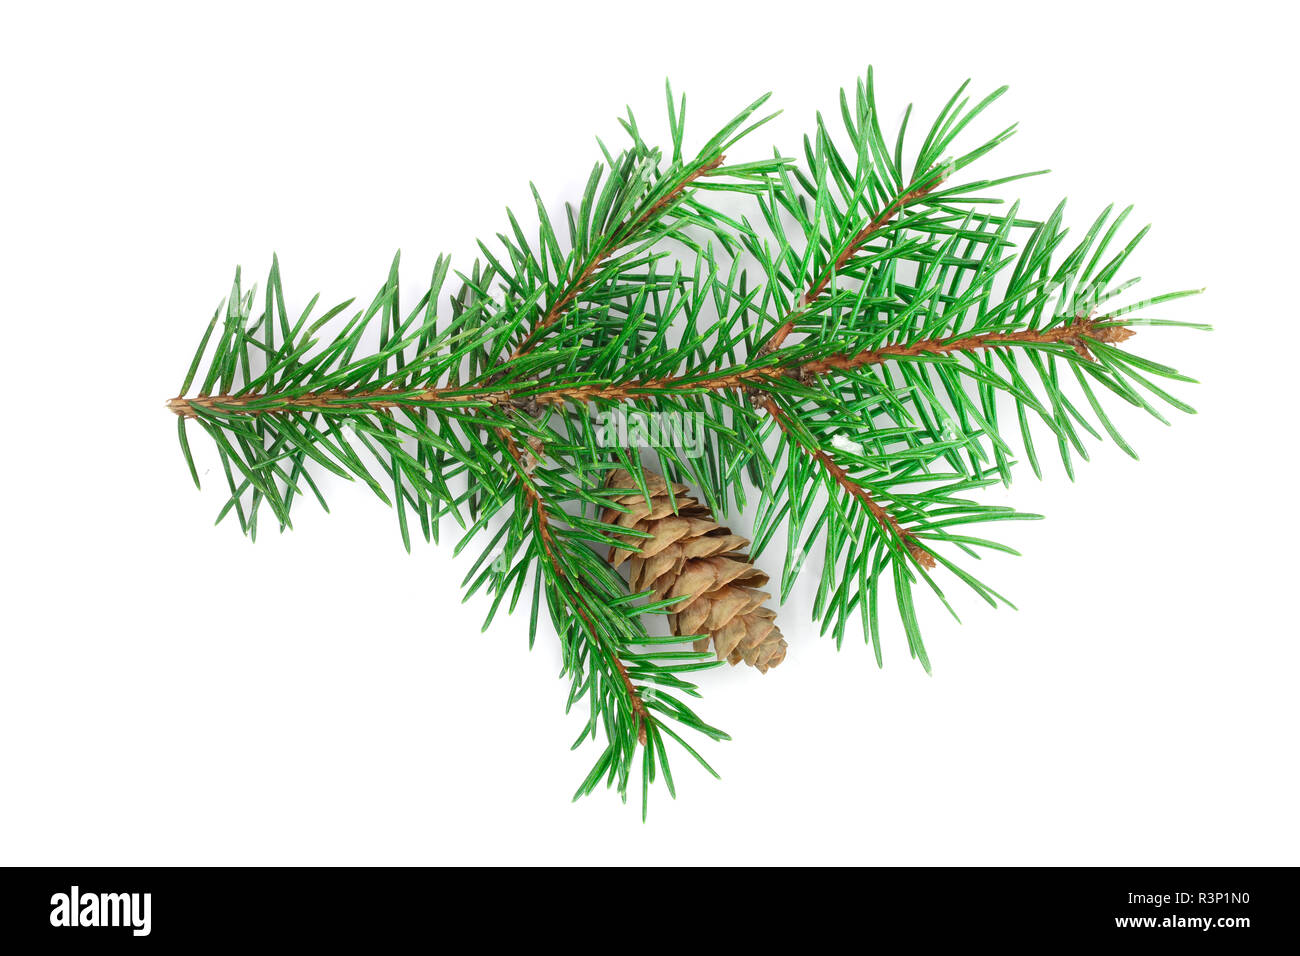 Fir tree branch with cone isolated on a white background close-up. Top view - Stock Image